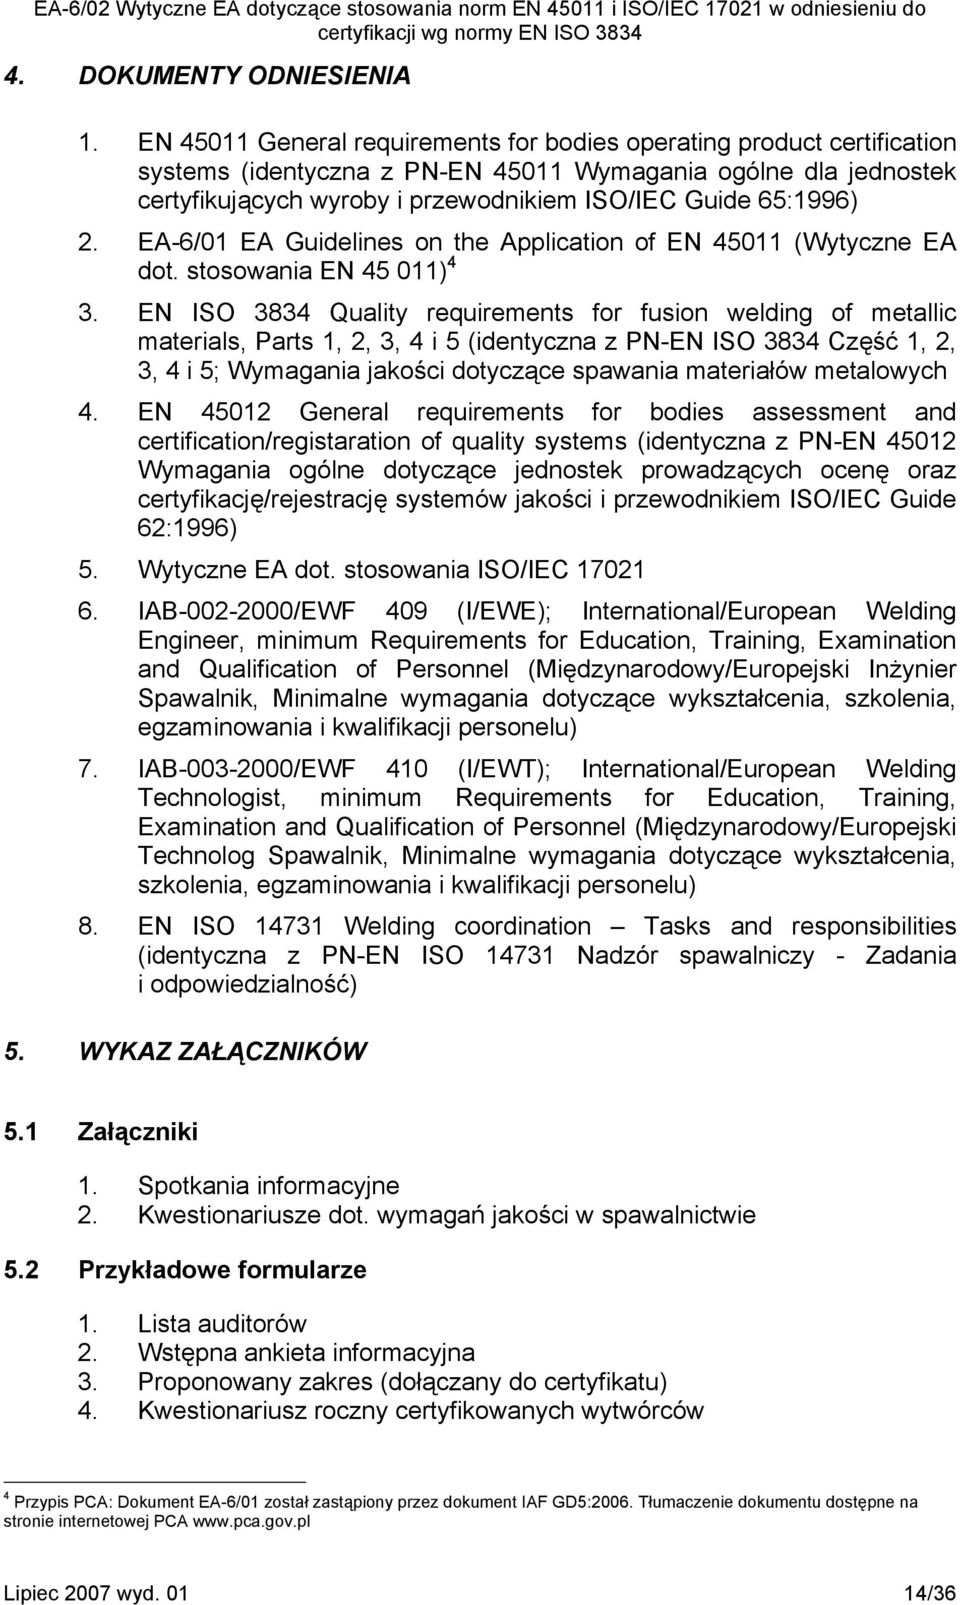 2. EA-6/01 EA Guidelines on the Application of EN 45011 (Wytyczne EA dot. stosowania EN 45 011) 4 3.